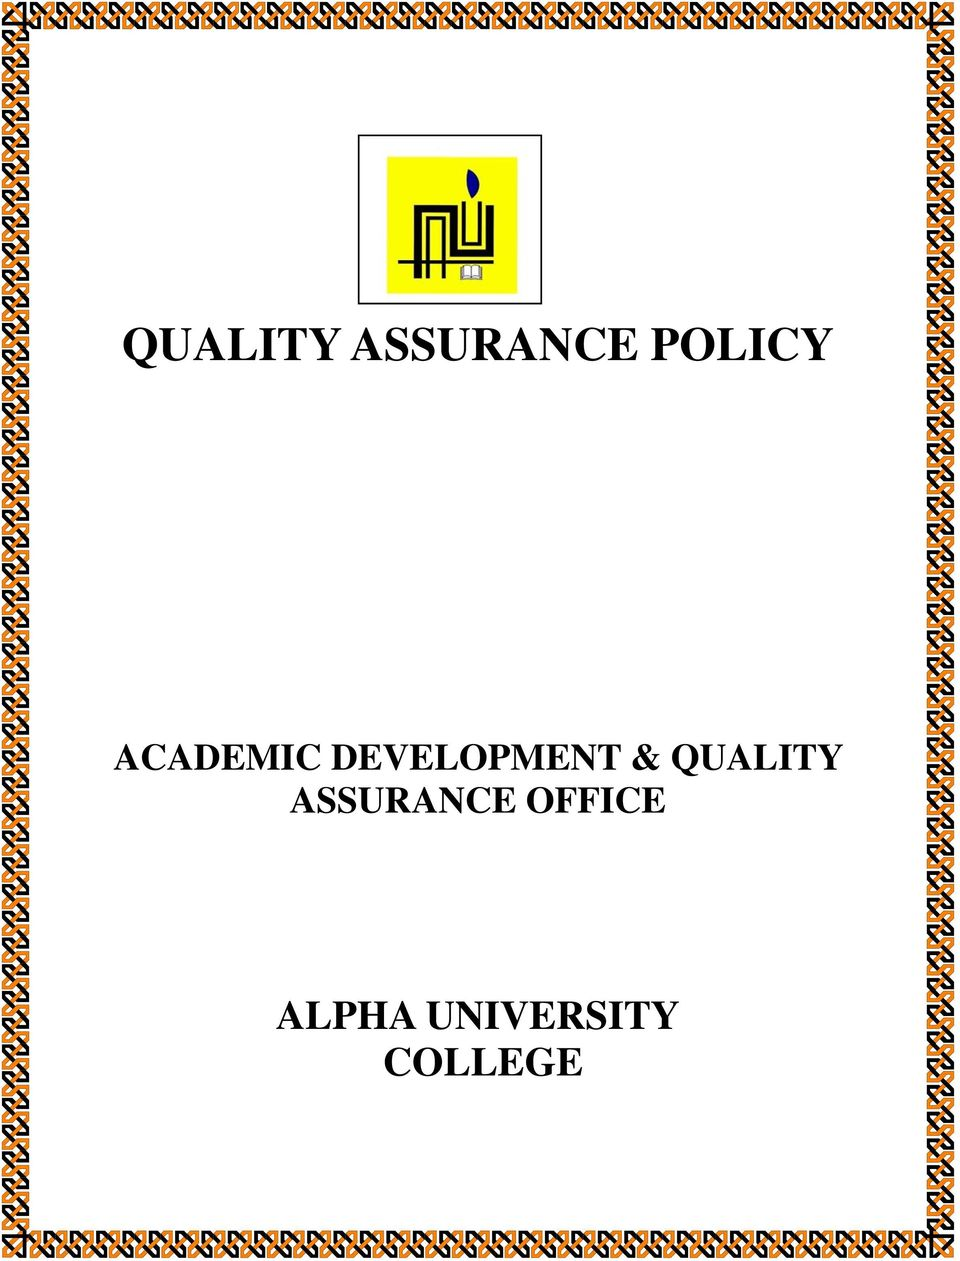 QUALITY ASSURANCE OFFICE